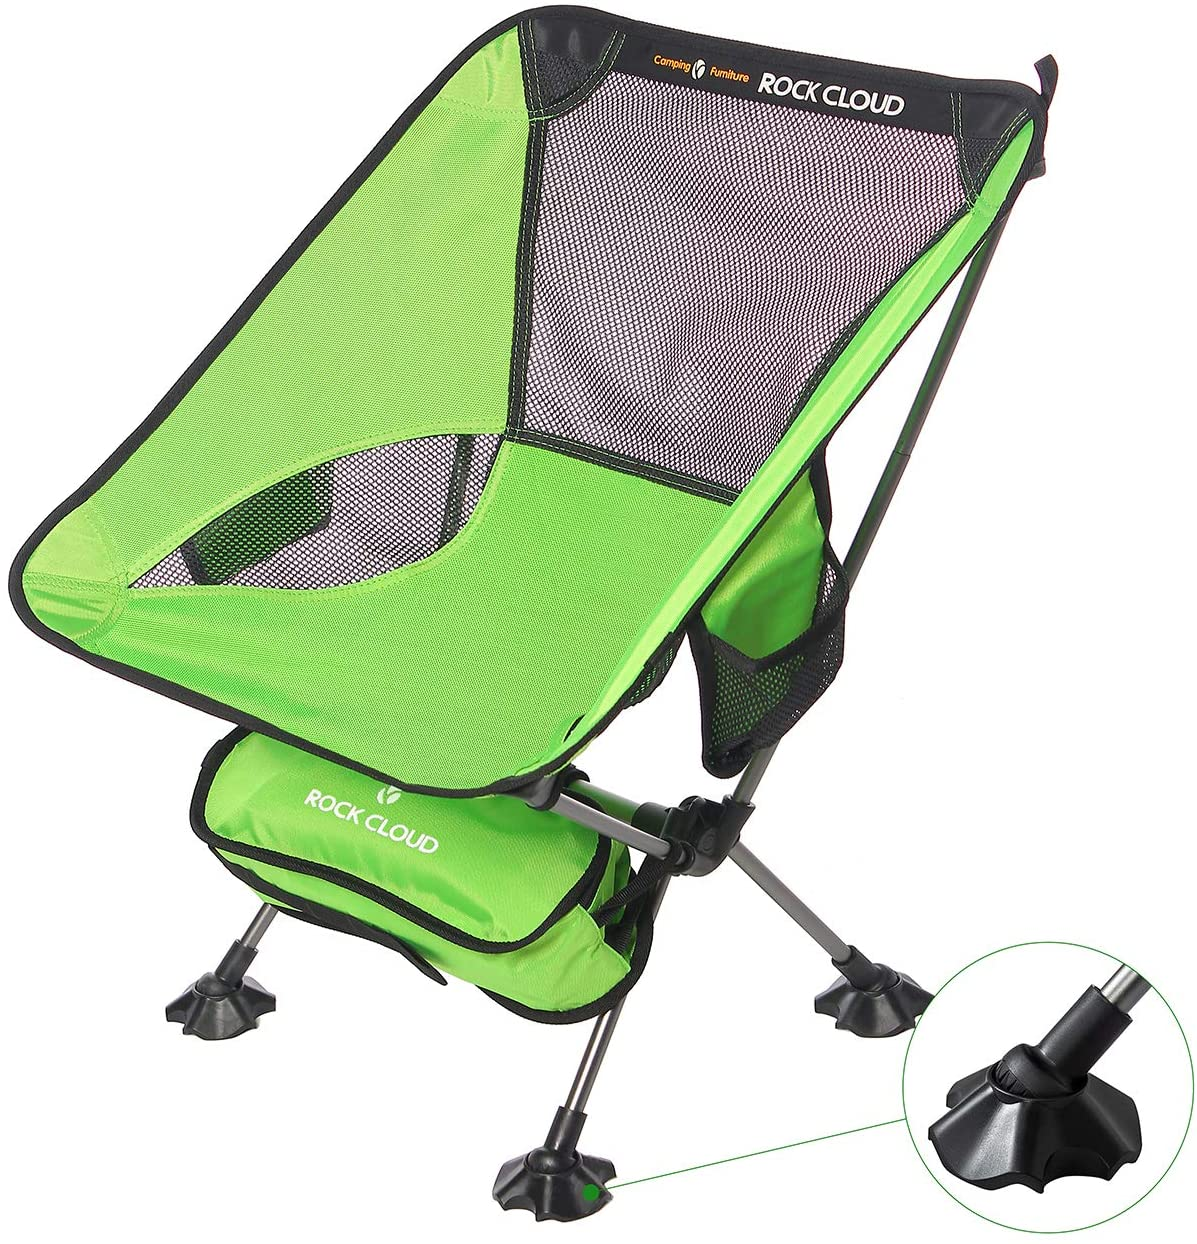 Ultralight Folding Camping Chair with Legs Stabilizers